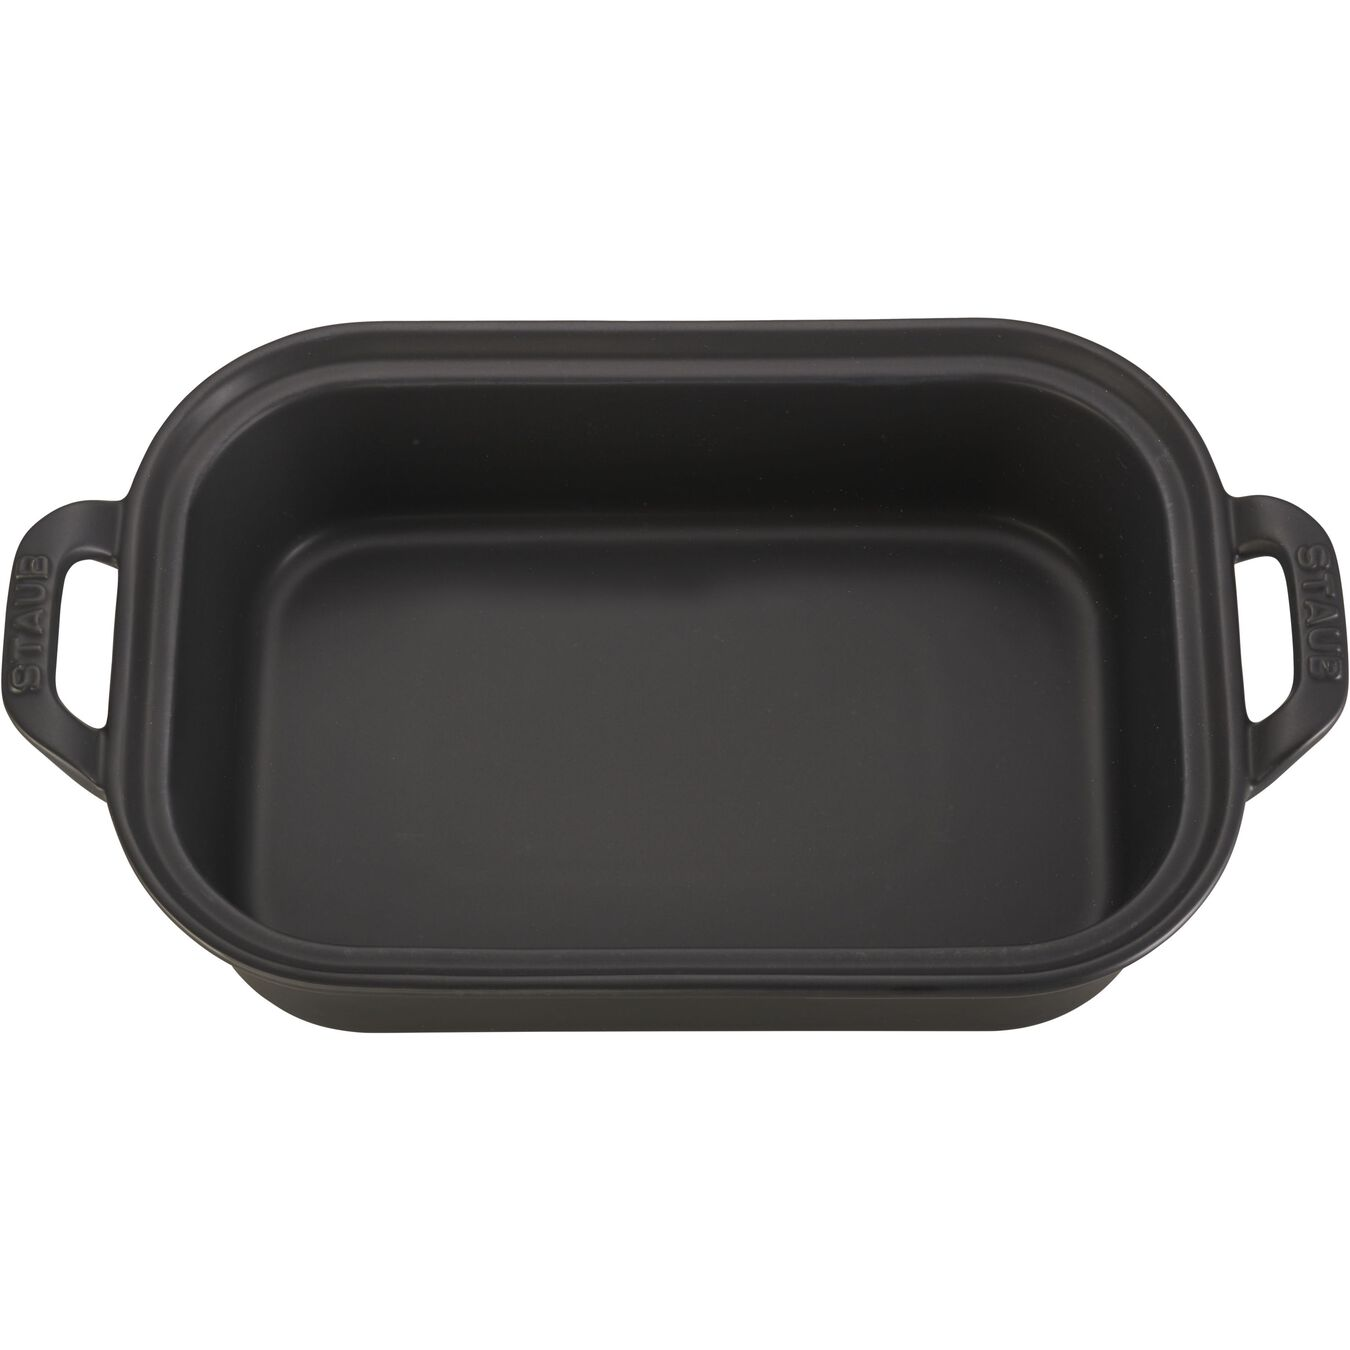 Ceramic rectangular Special shape bakeware, Black,,large 2